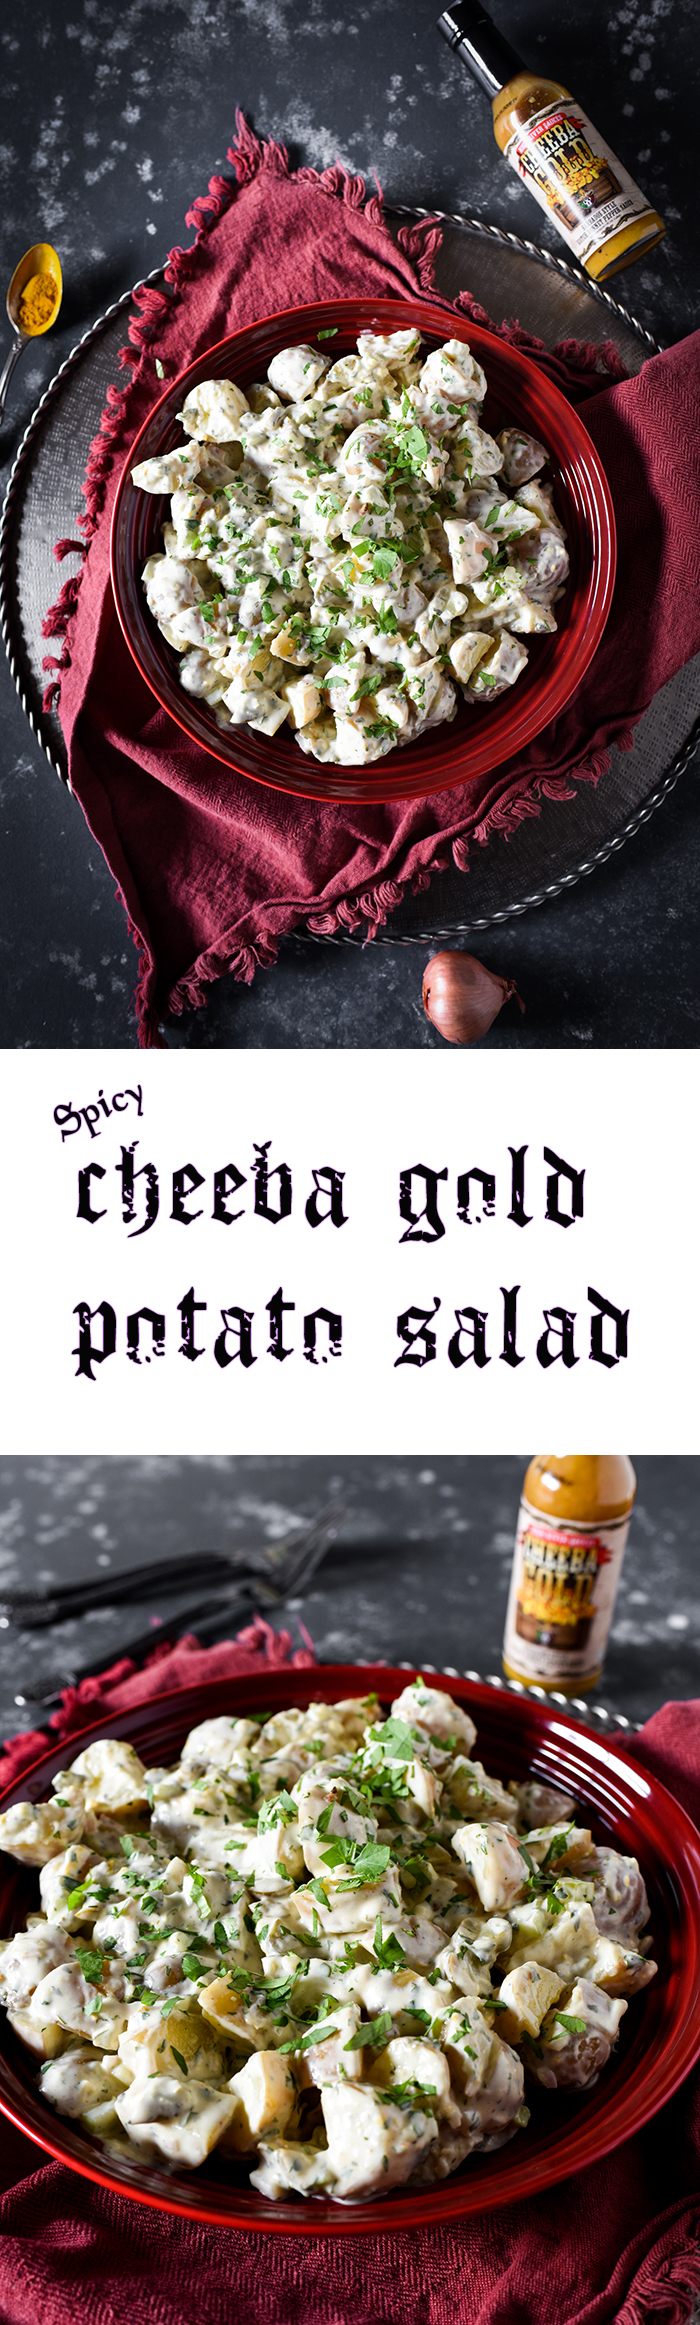 This spicy potato salad will leave you SCREAMIN'! Feed that inner rock star, yo!